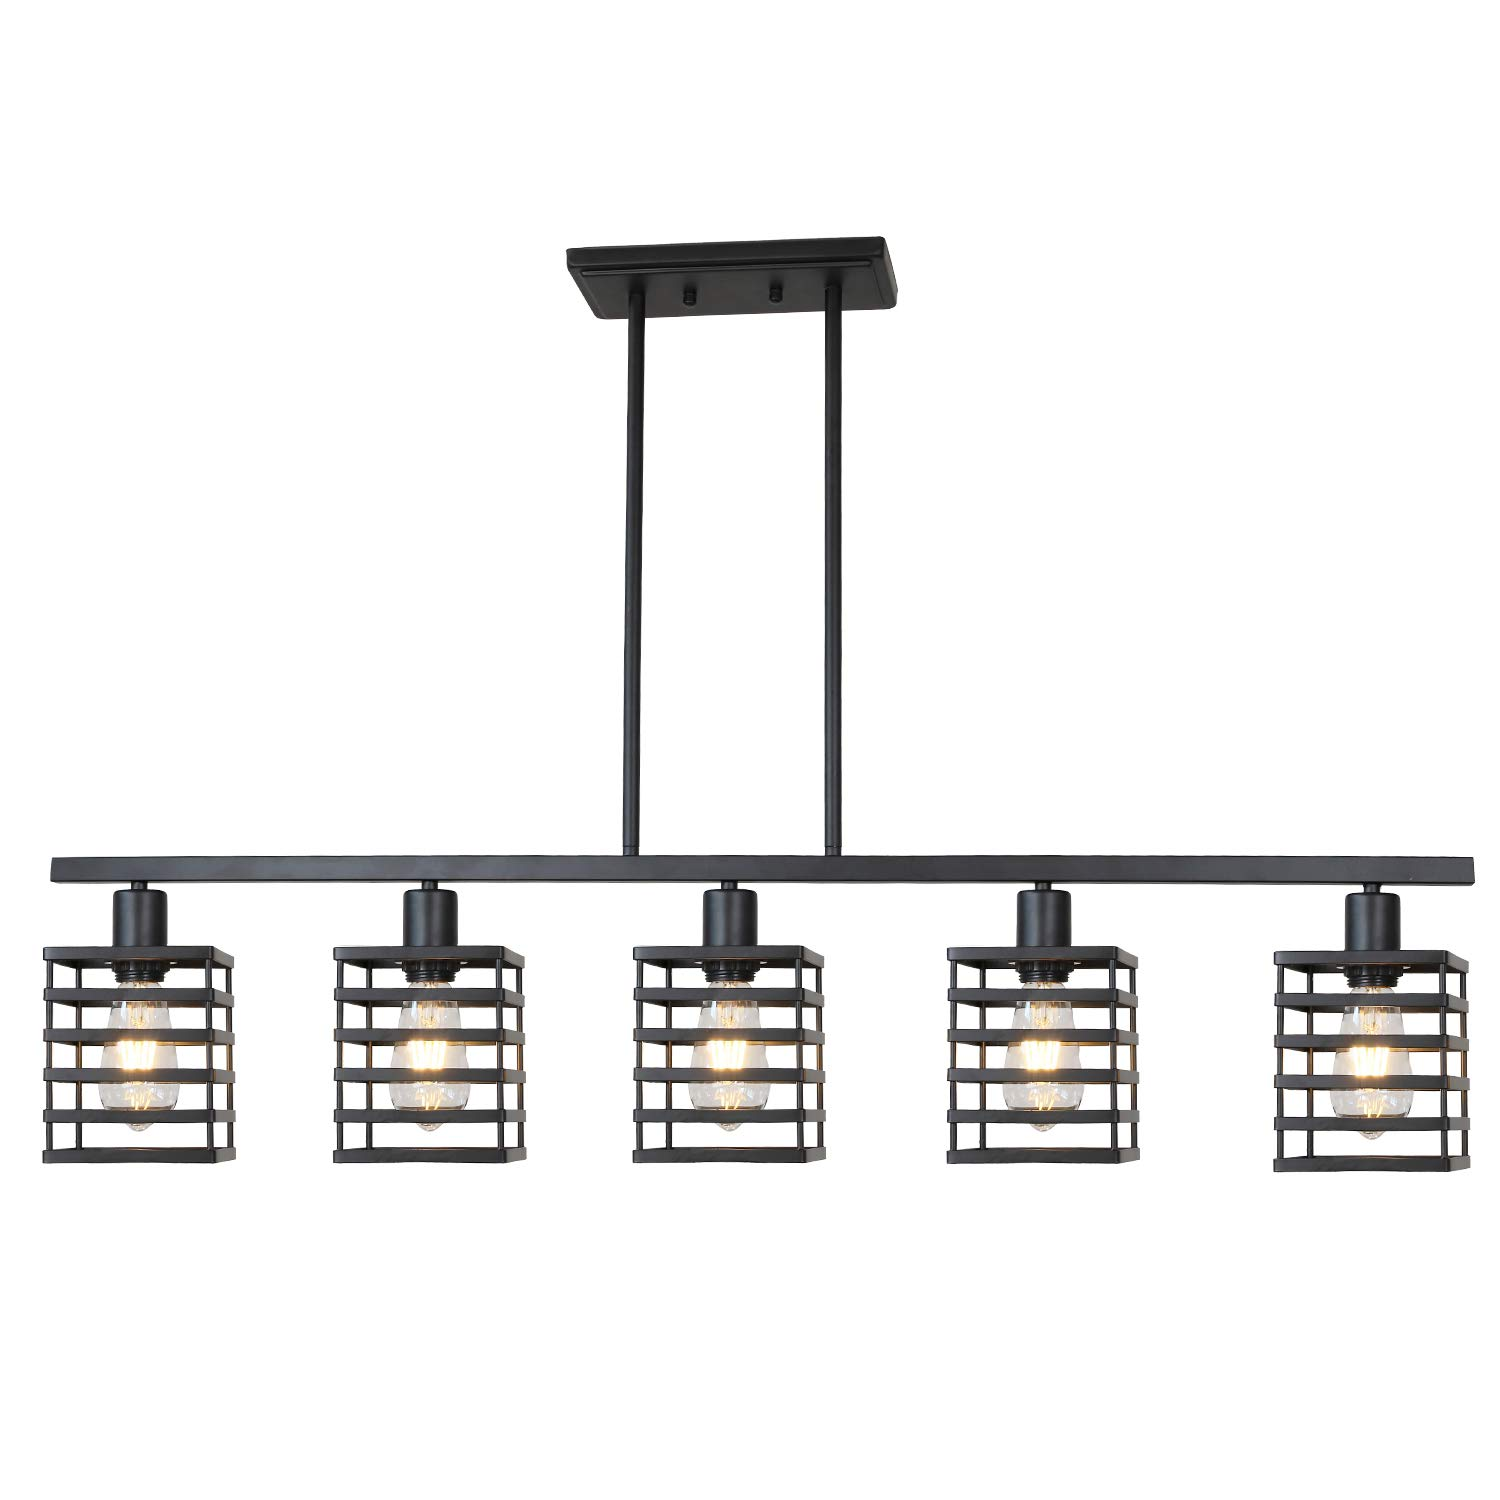 Island Pendant Lighting 5 Lights Linear Kitchen Light fixtures Rustic Semi Flush Mount Ceiling Lights Black Contemporary Chandeliers with Metal Cage Shades by Lucidce